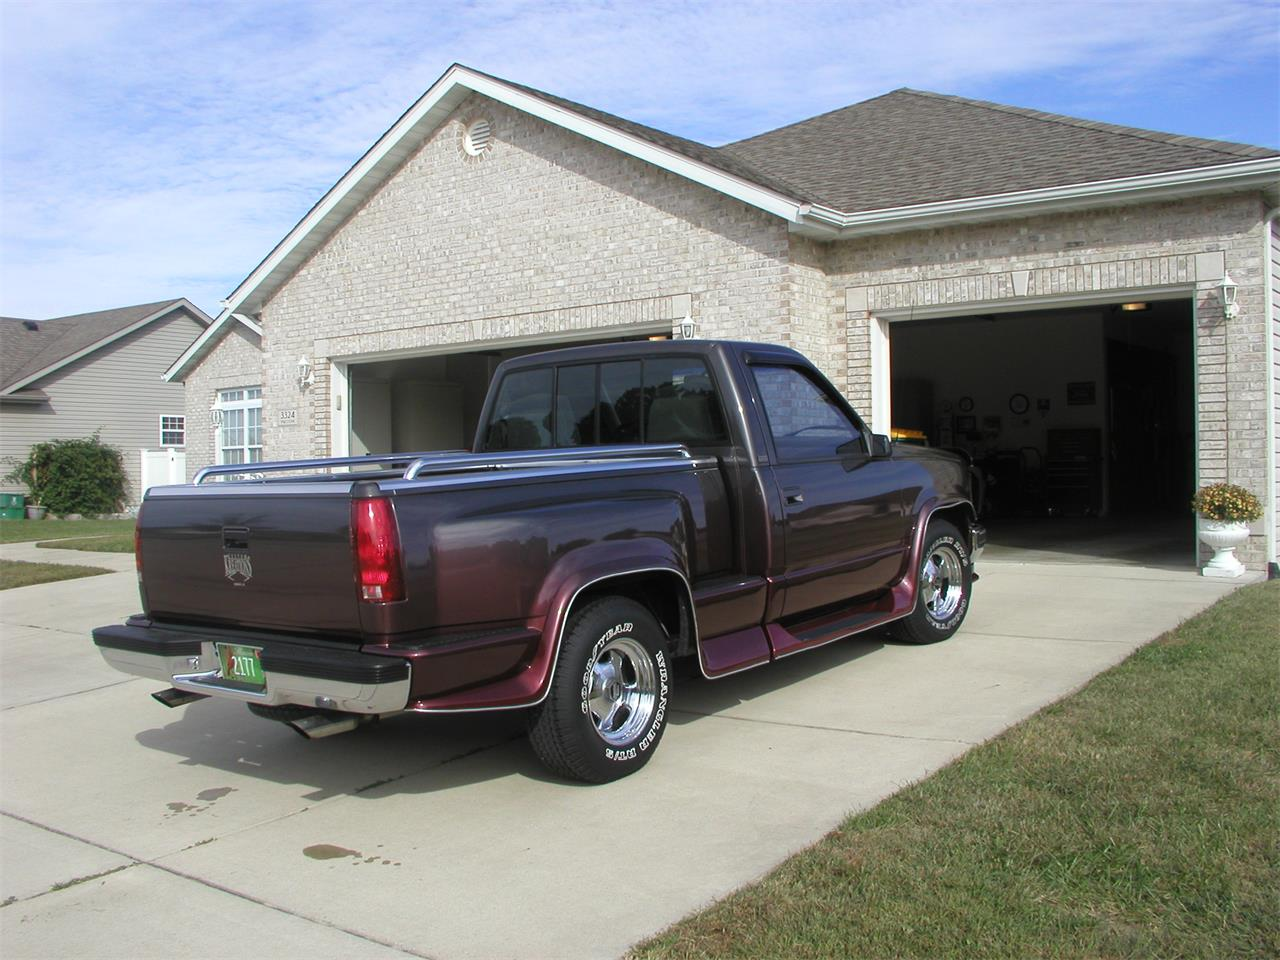 Large Picture of 1992 Chevrolet Pickup - $11,000.00 Offered by a Private Seller - KNIK